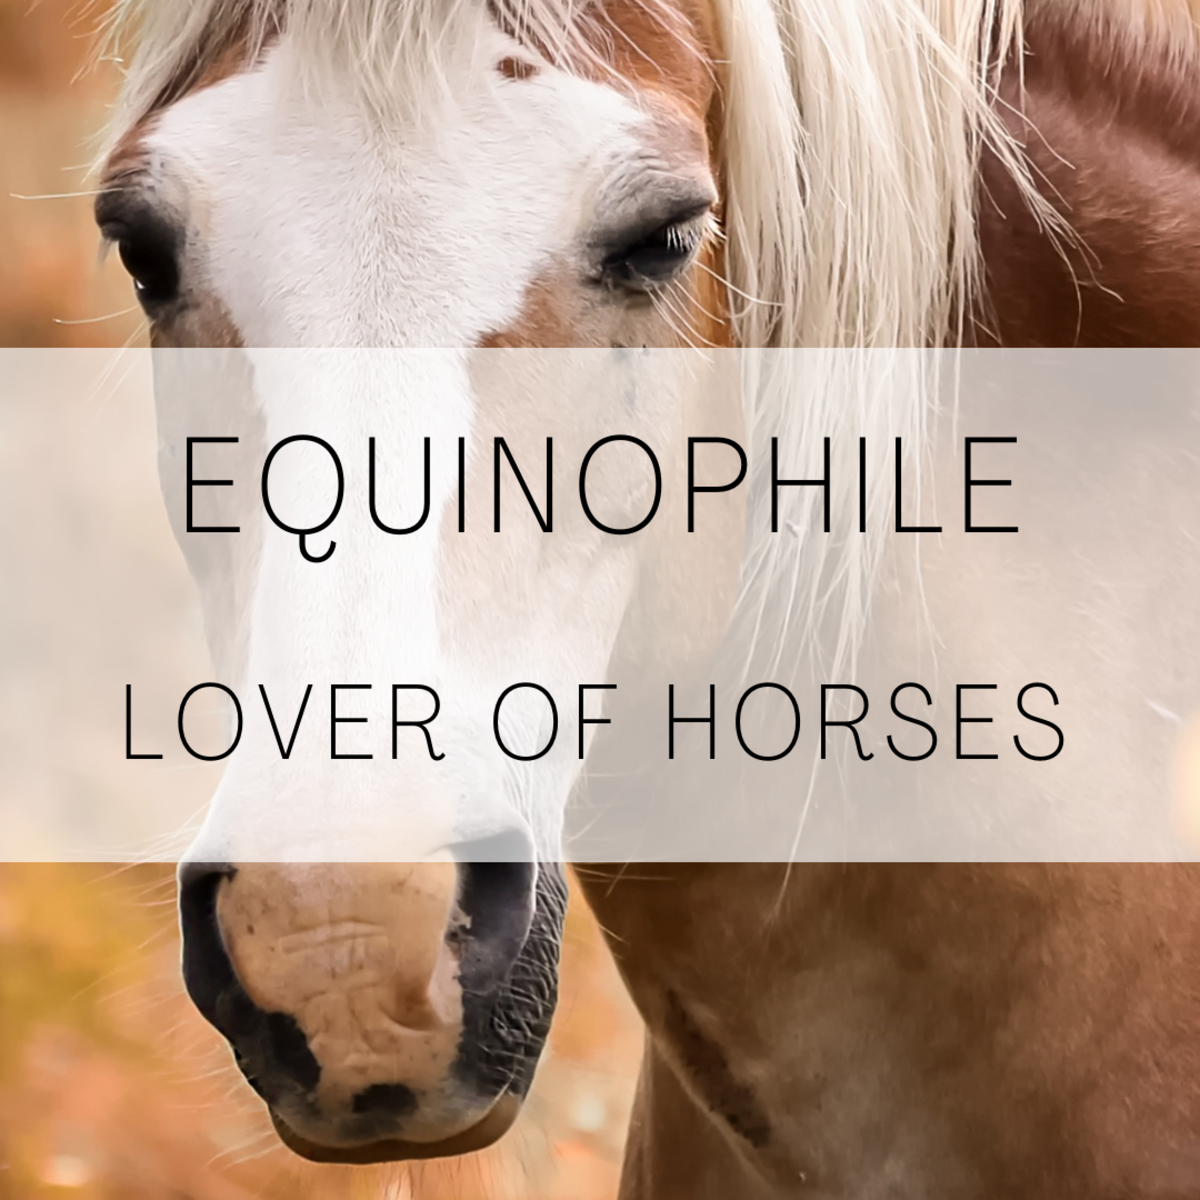 Equinophile, a lover of horses